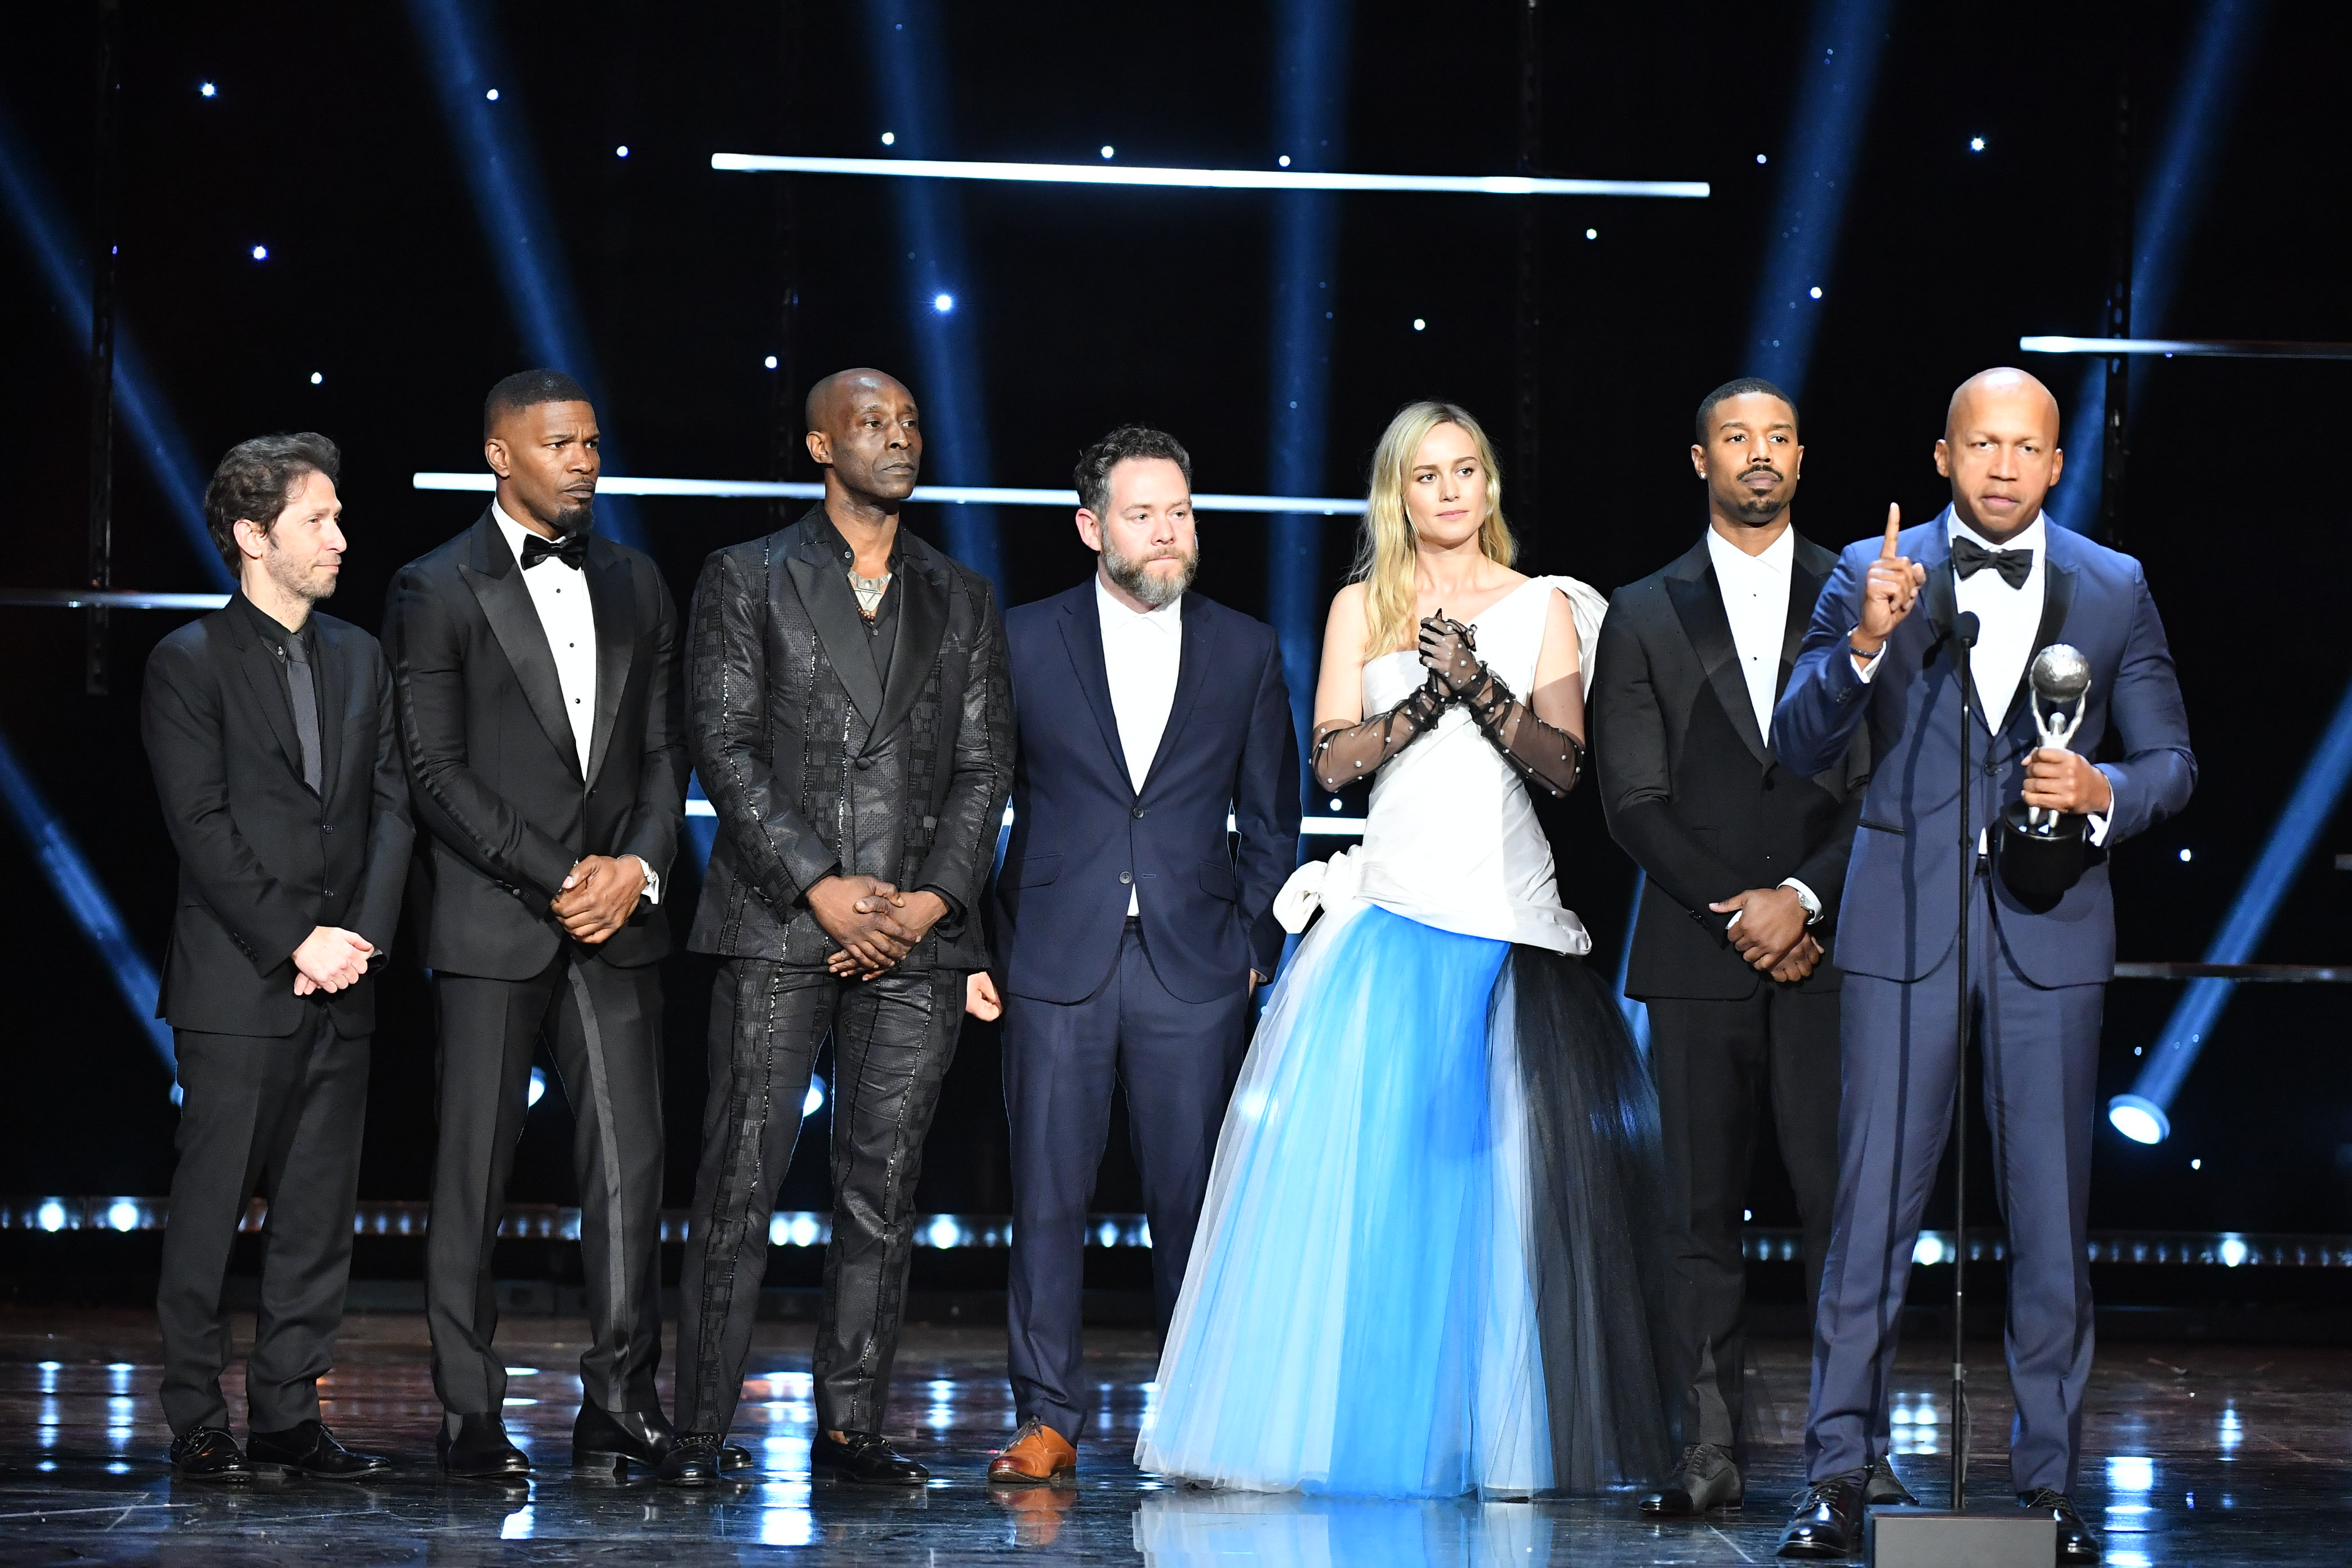 Tim Blake Nelson, Jamie Foxx, Rob Morgan, Asher Goldstein, Brie Larson, Michael B. Jordan and Bryan Stevenson51st Annual NAACP Image Awards, Show, Pasadena Civic Auditorium, Los Angeles, USA - 22 Feb 2020